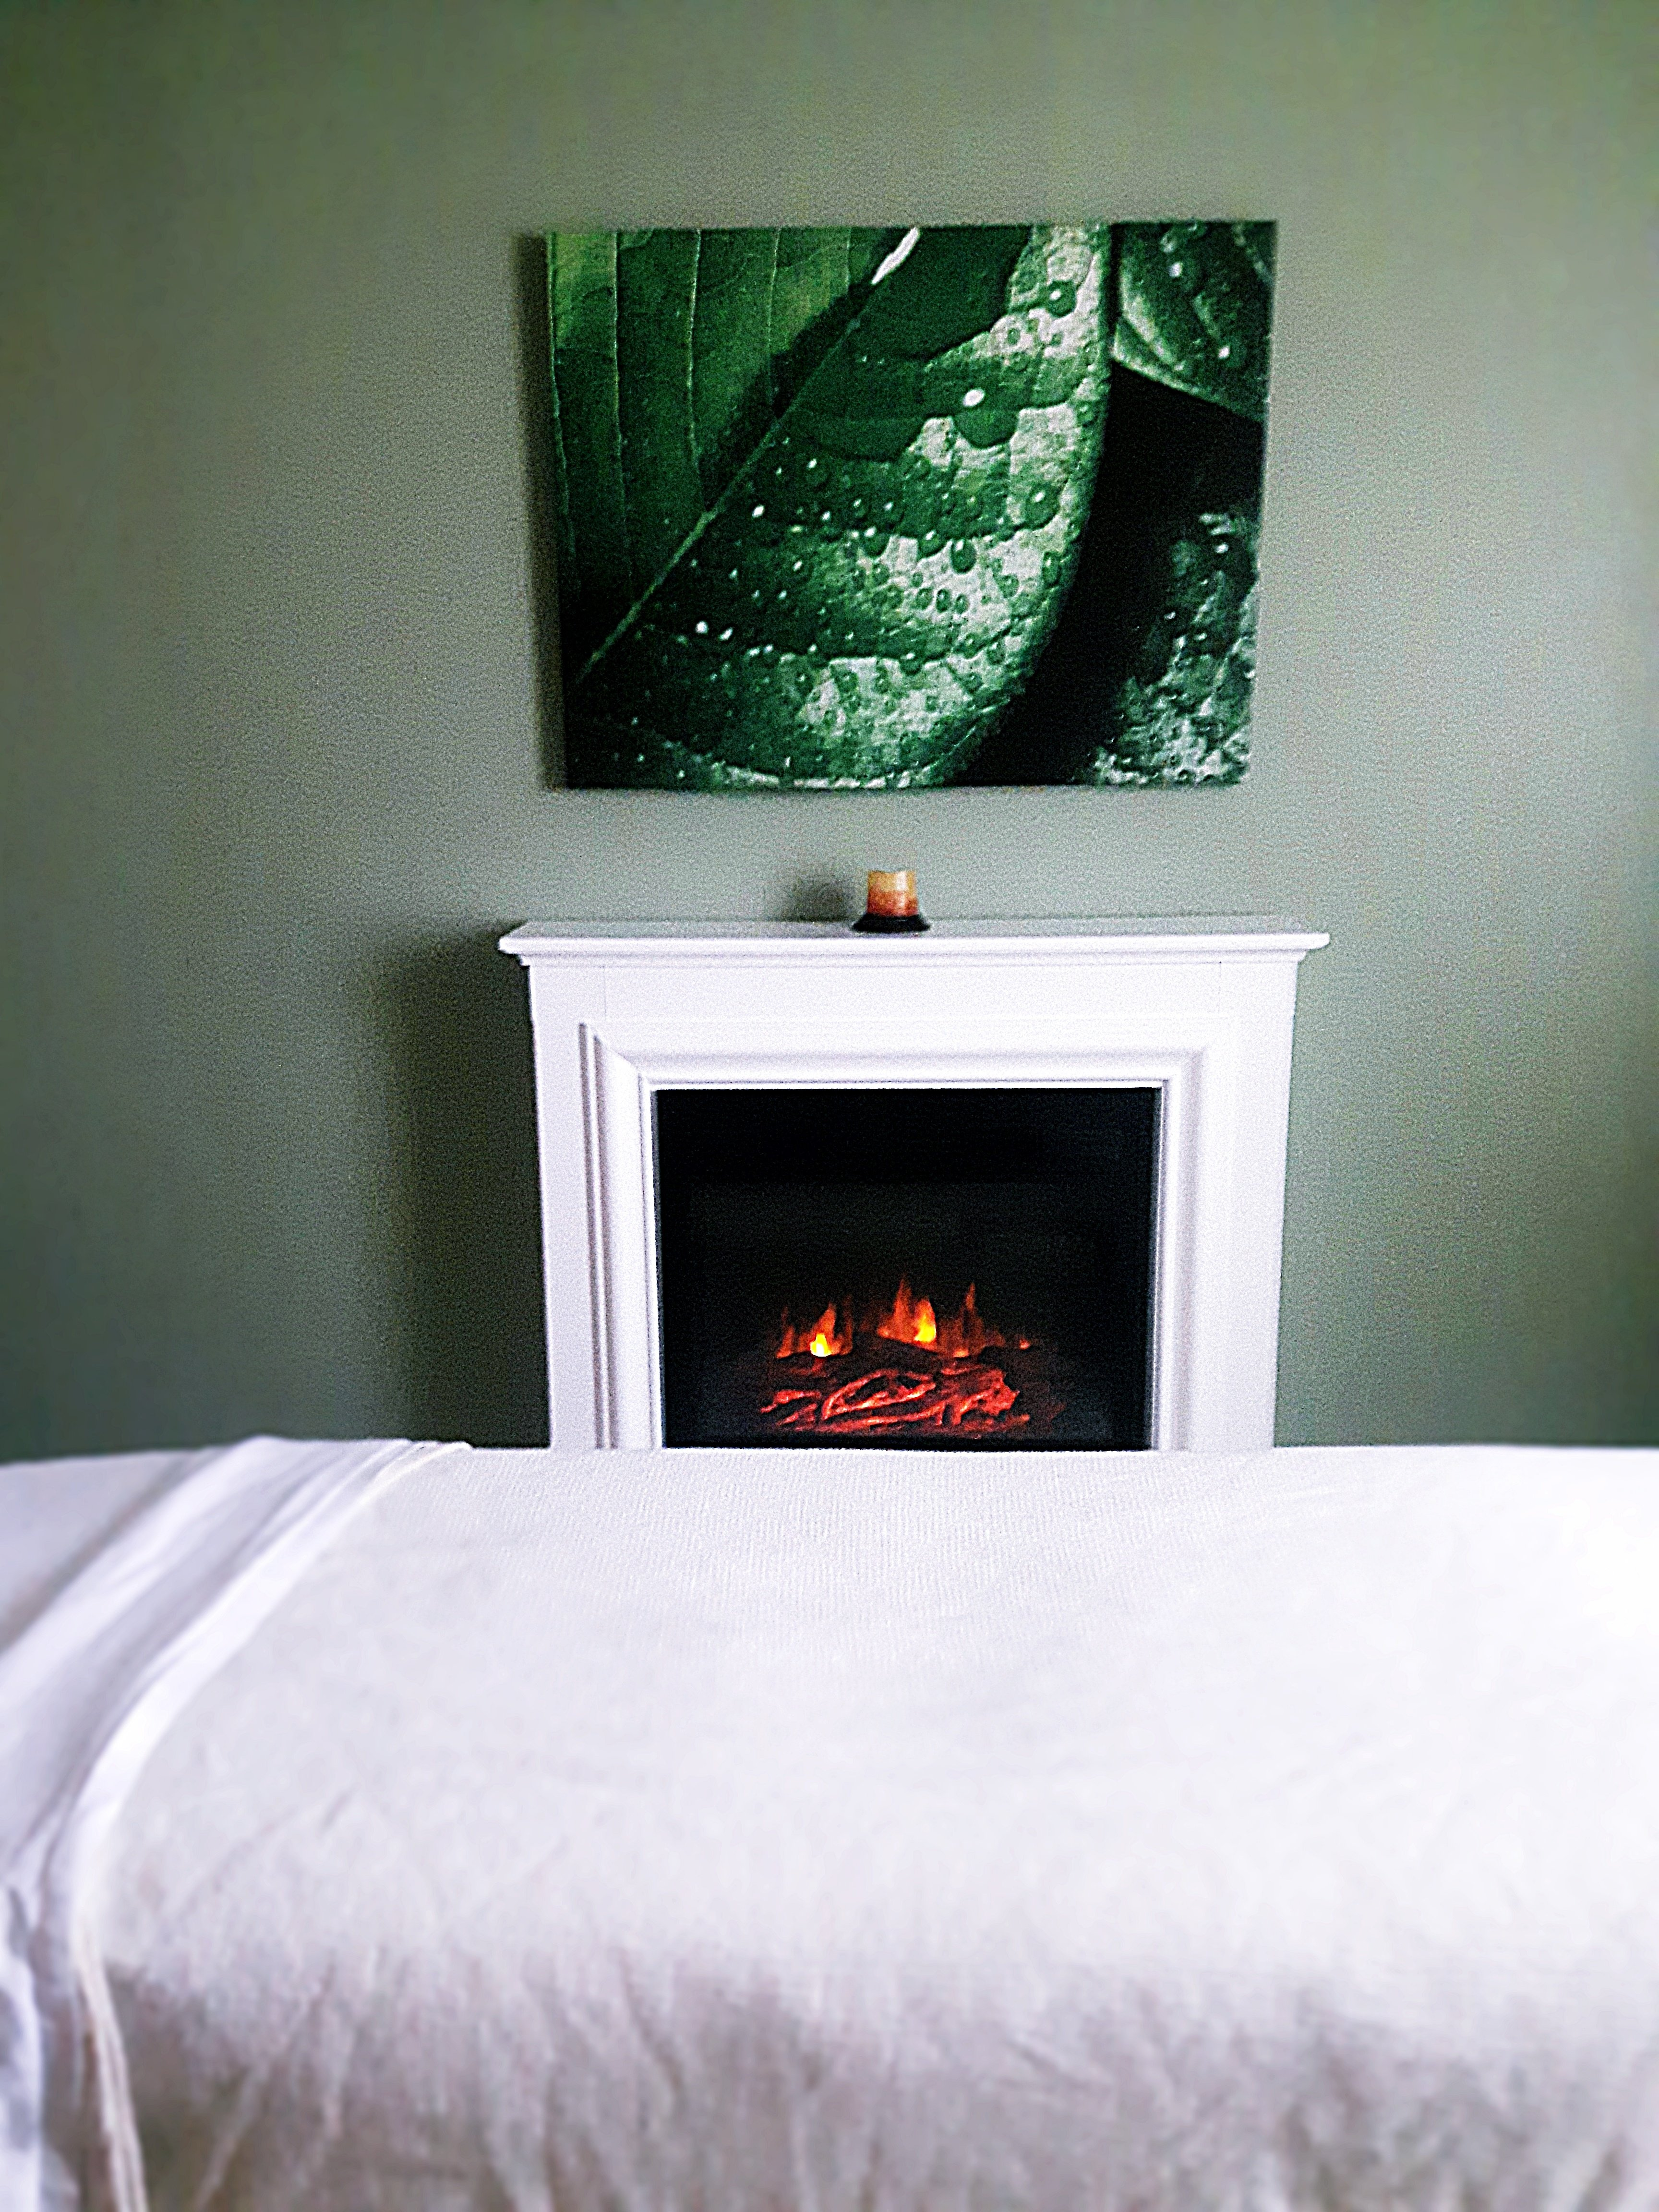 A beautiful fireplace for your enjoyment and to warm you up on colder days